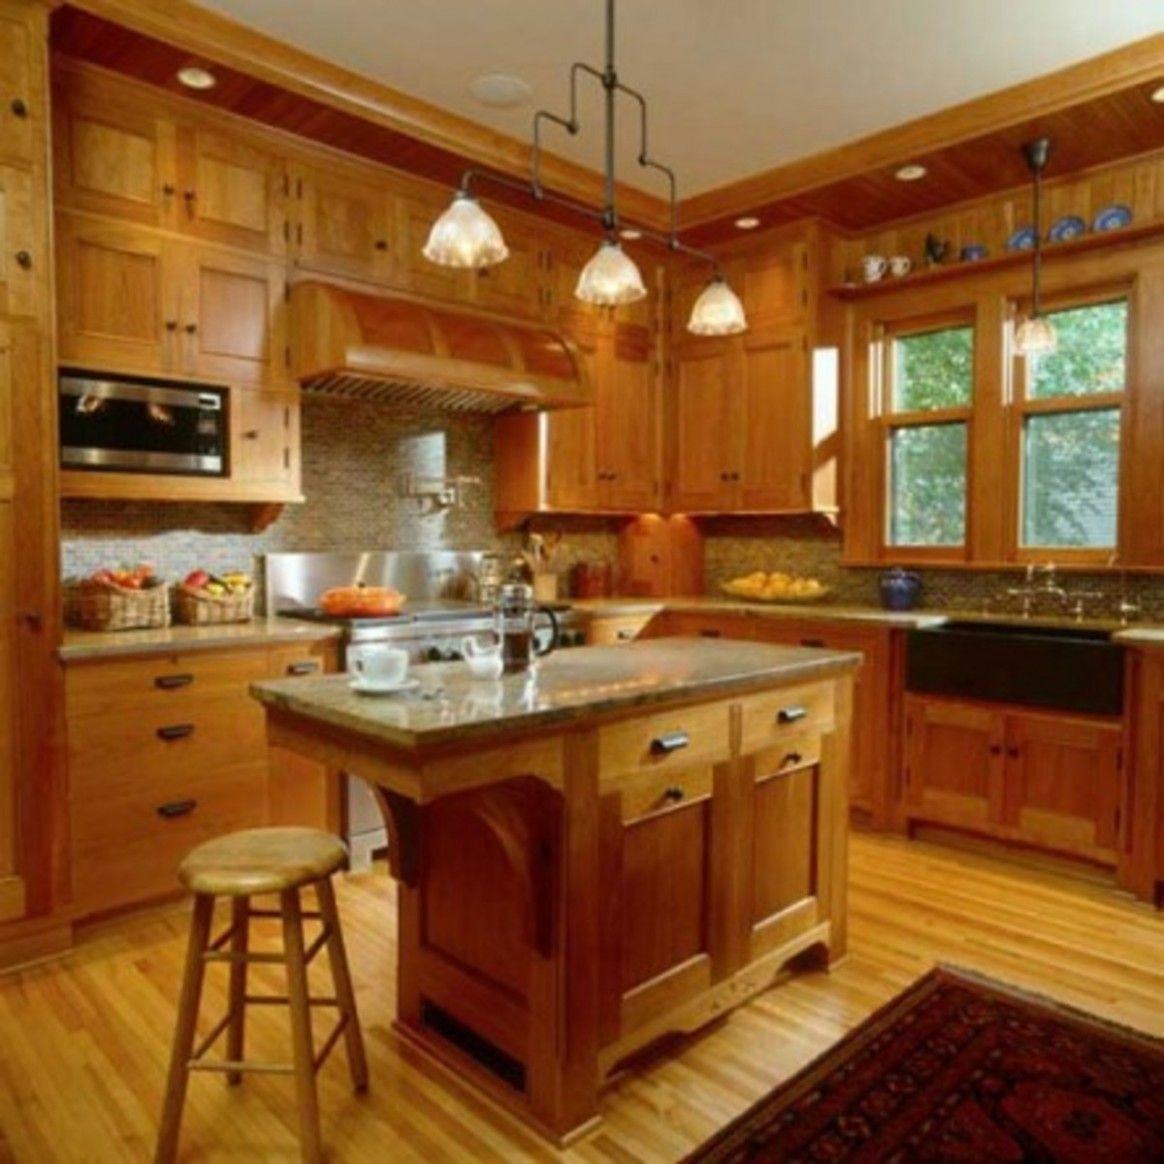 Period Kitchens Designs Renovation: Modern Age Kitchen And Joinery In 2020